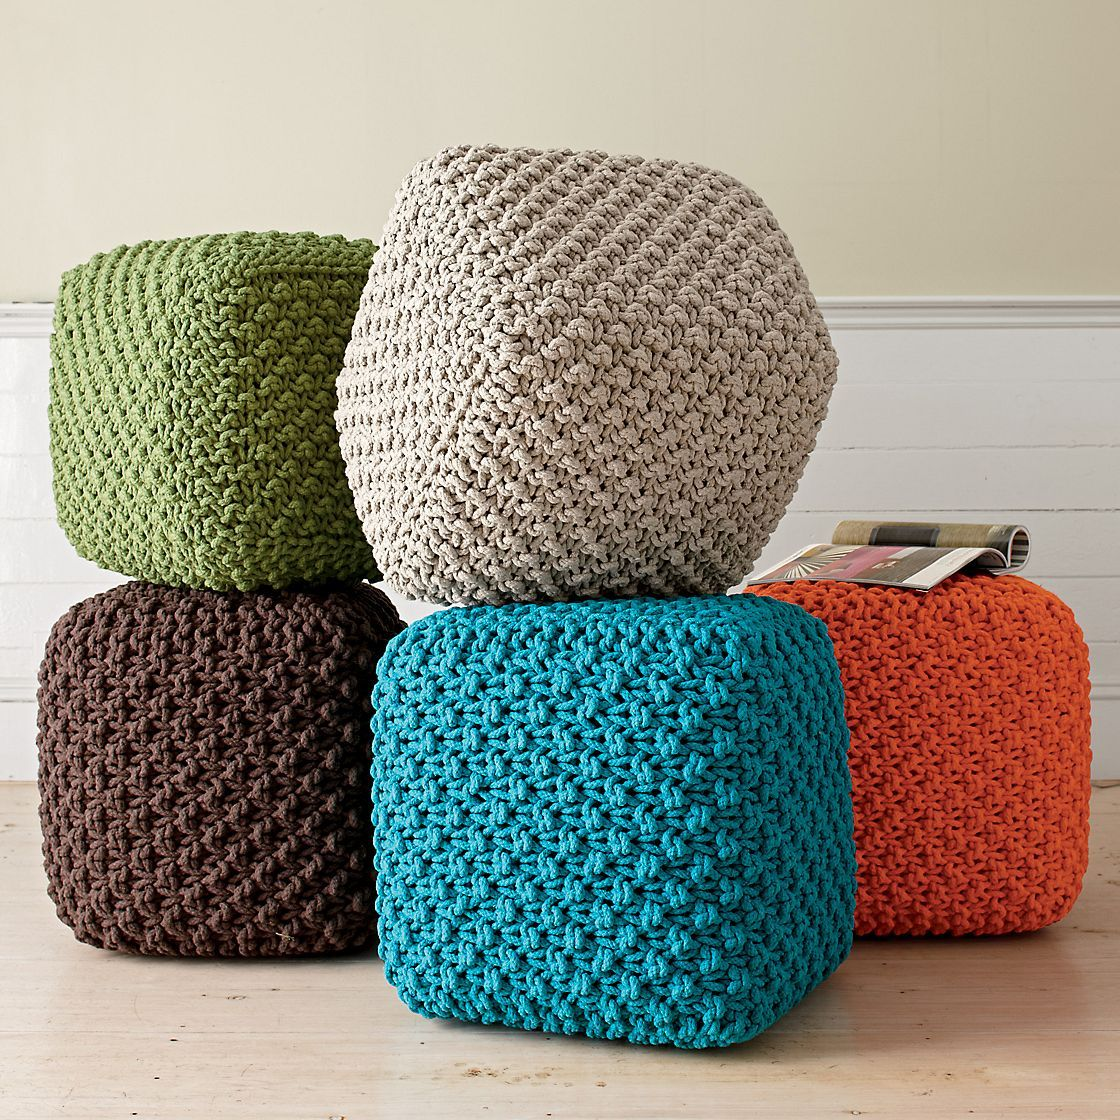 Square Poufs ... good foot rests or casual seating. I love this chunky - Bubble Knit Pouf Poufs, Extra Seating And Bubbles